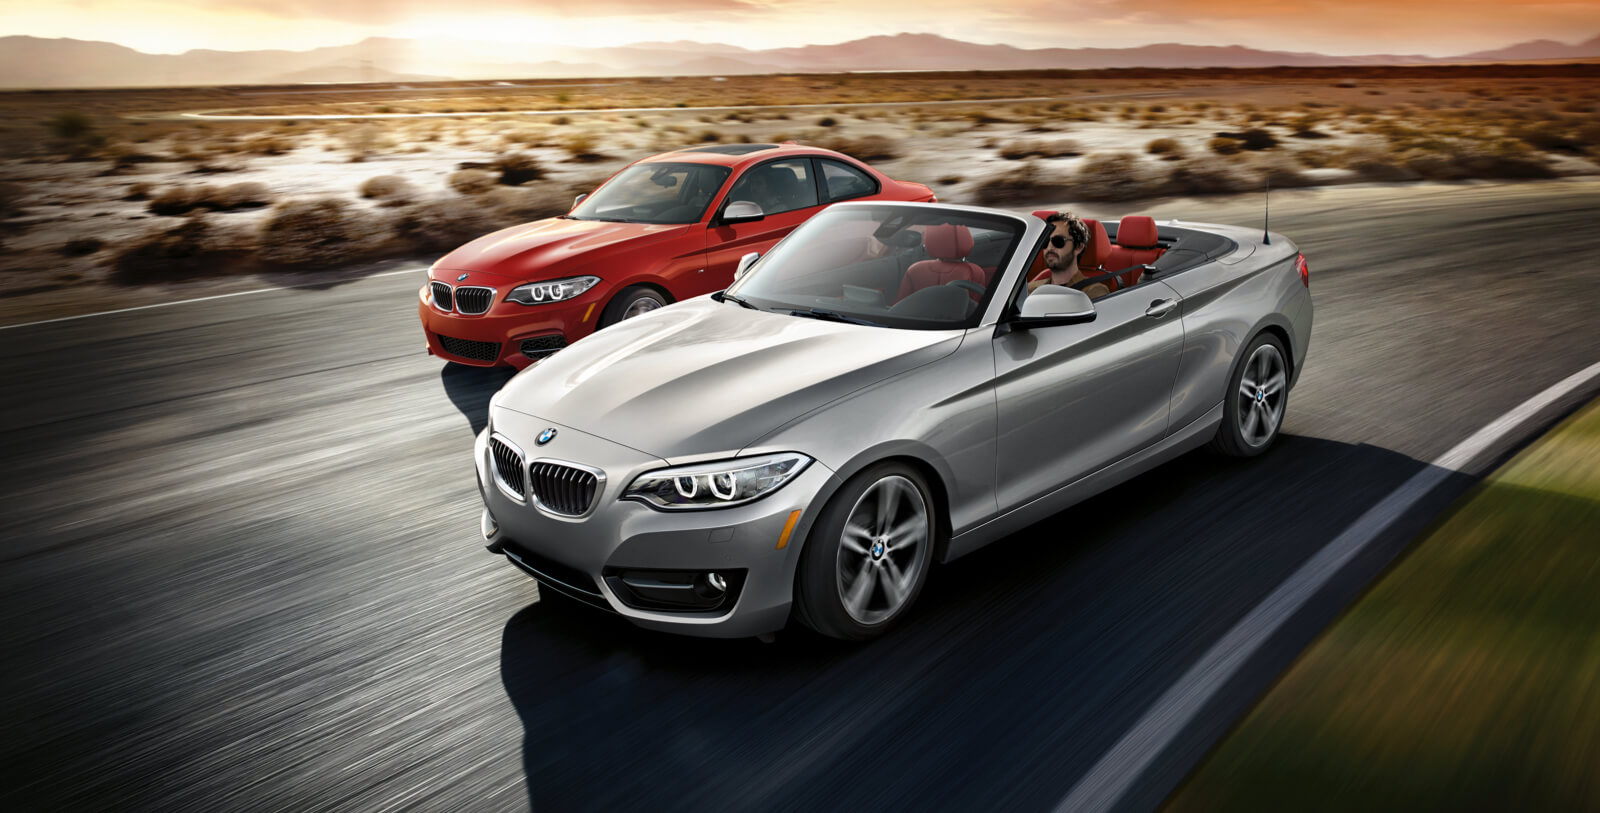 2017 Bmw 2 Series Convertible In Pembroke Pines Fl